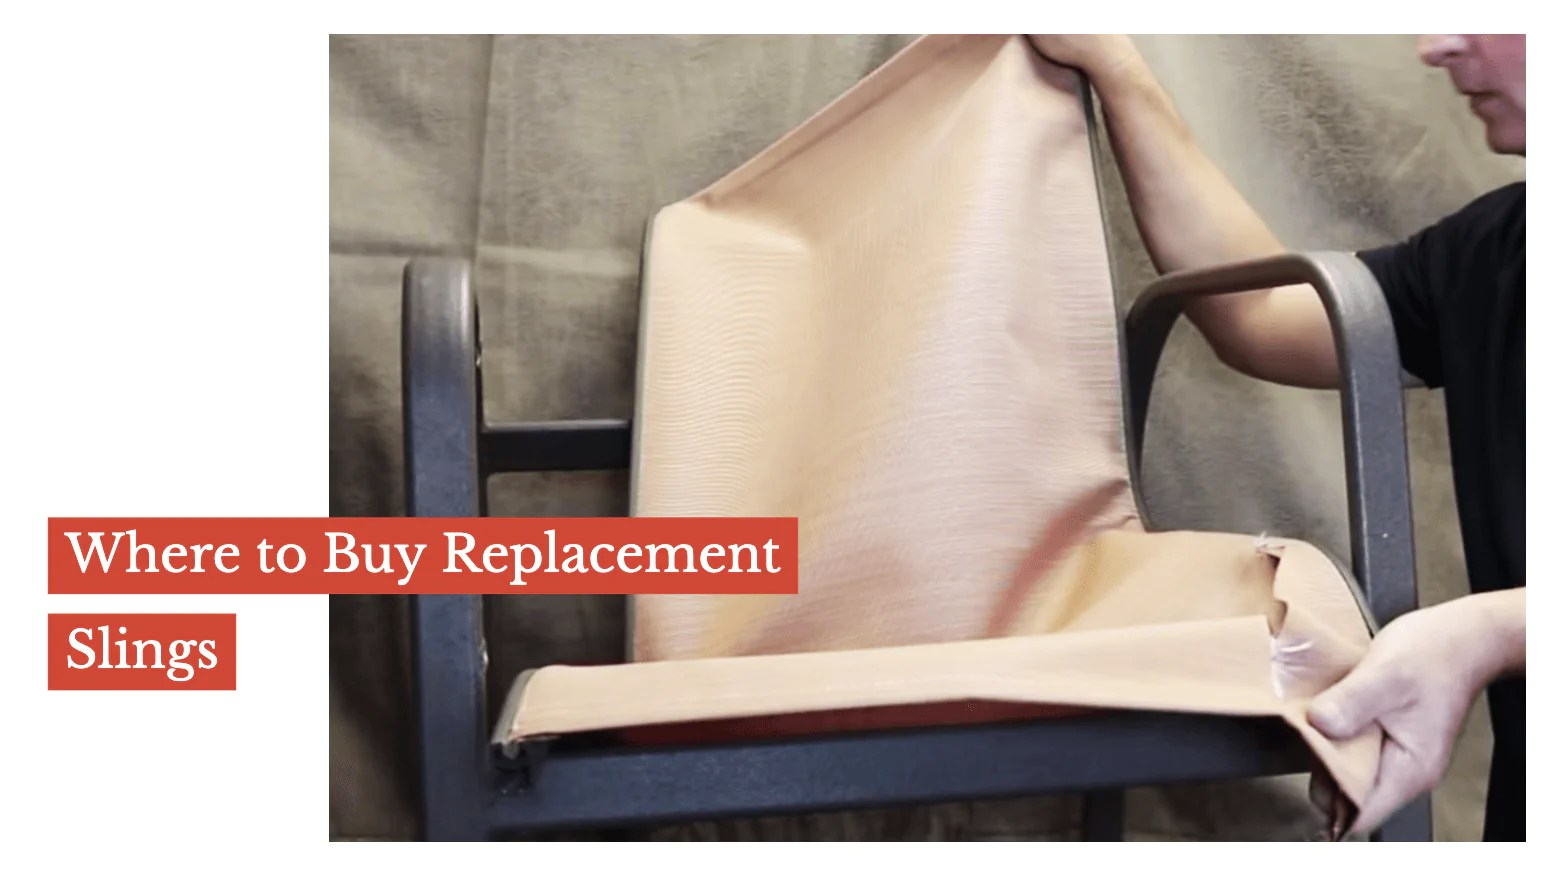 where to buy replacement slings